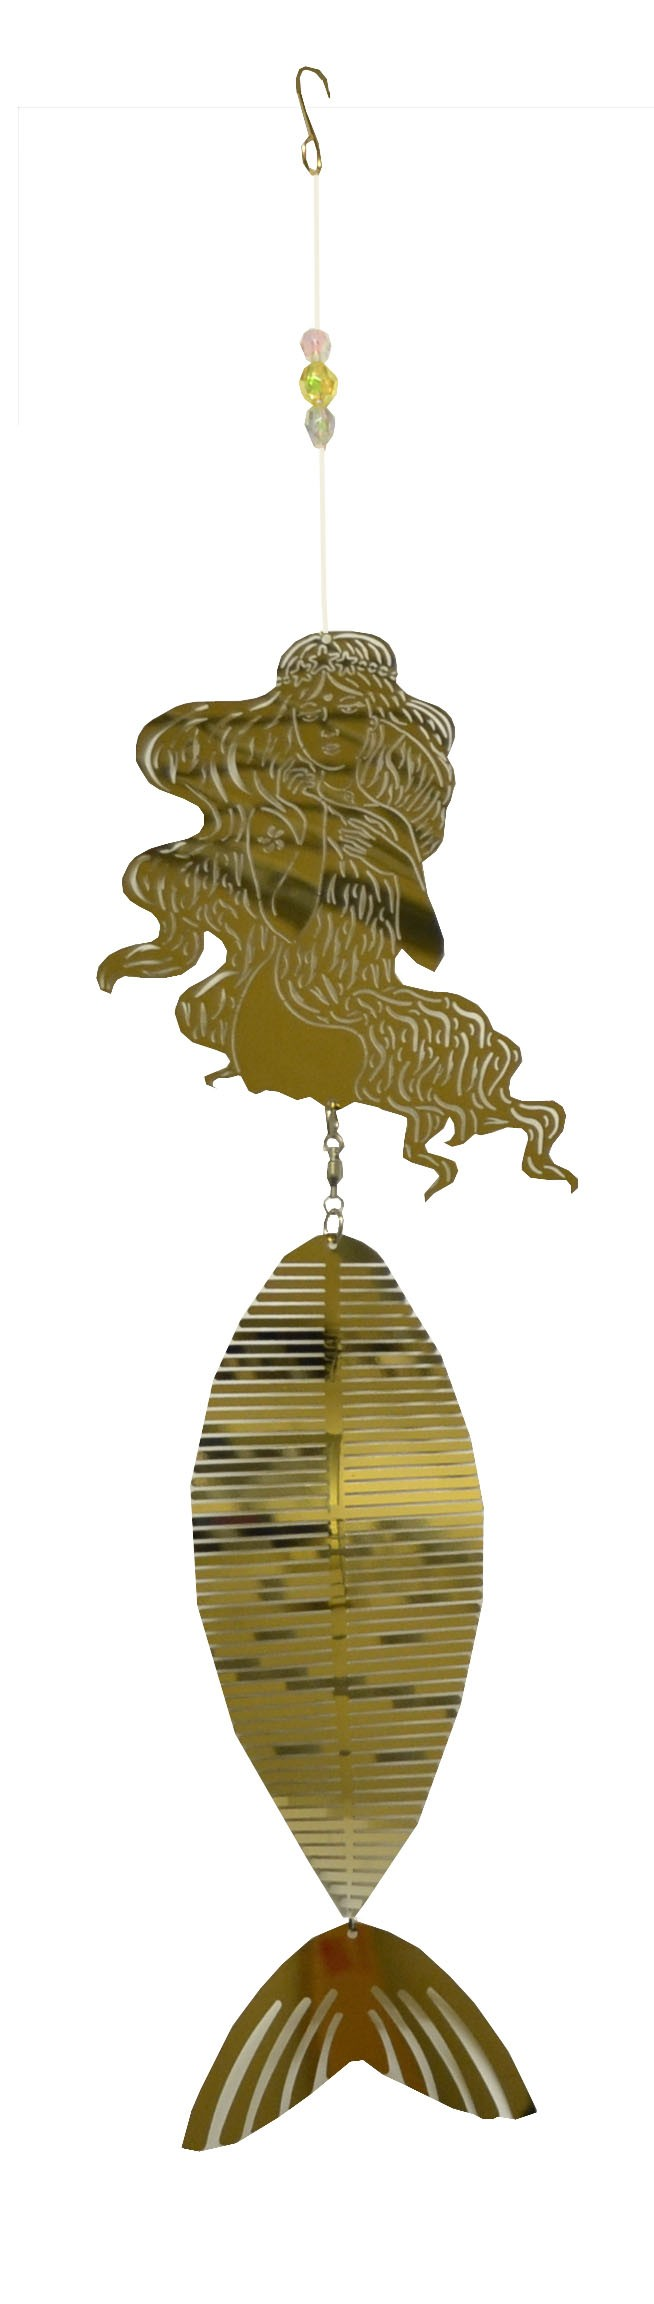 long hair mermaid gold wind chime 711001